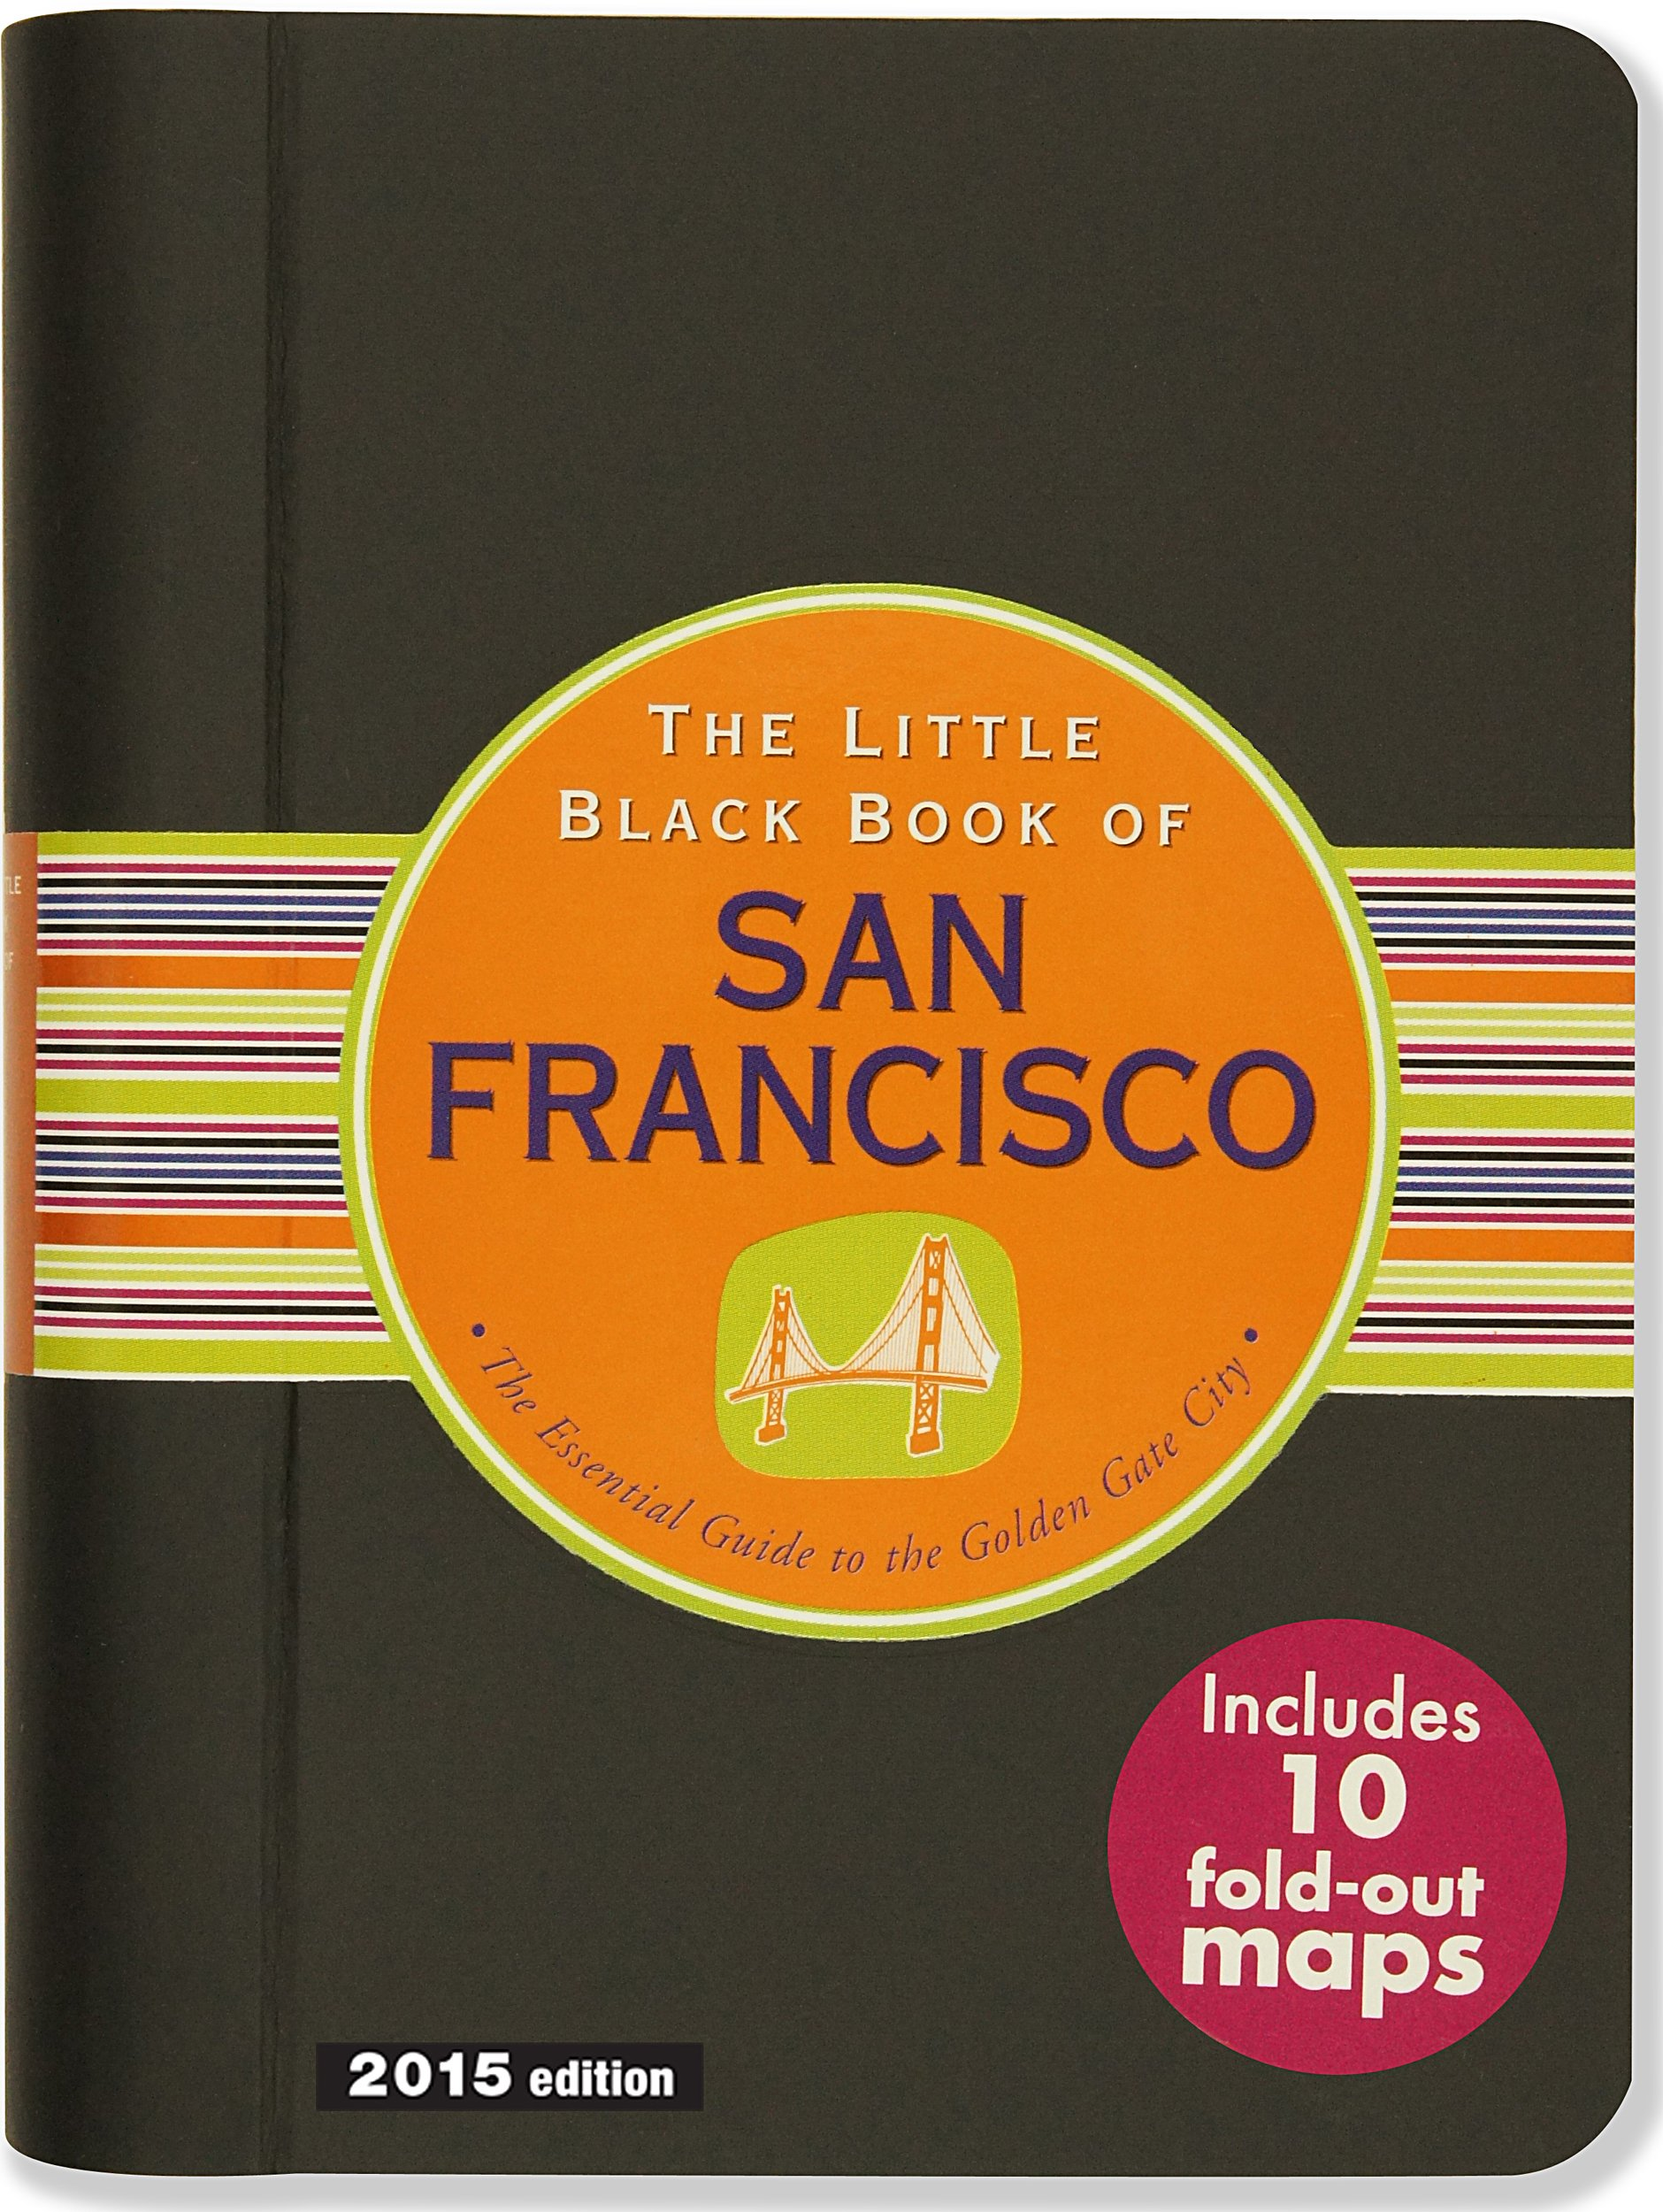 The Little Black Book of San Francisco, 2015 Edition: The Essential Guide to the Golden Gate City pdf epub